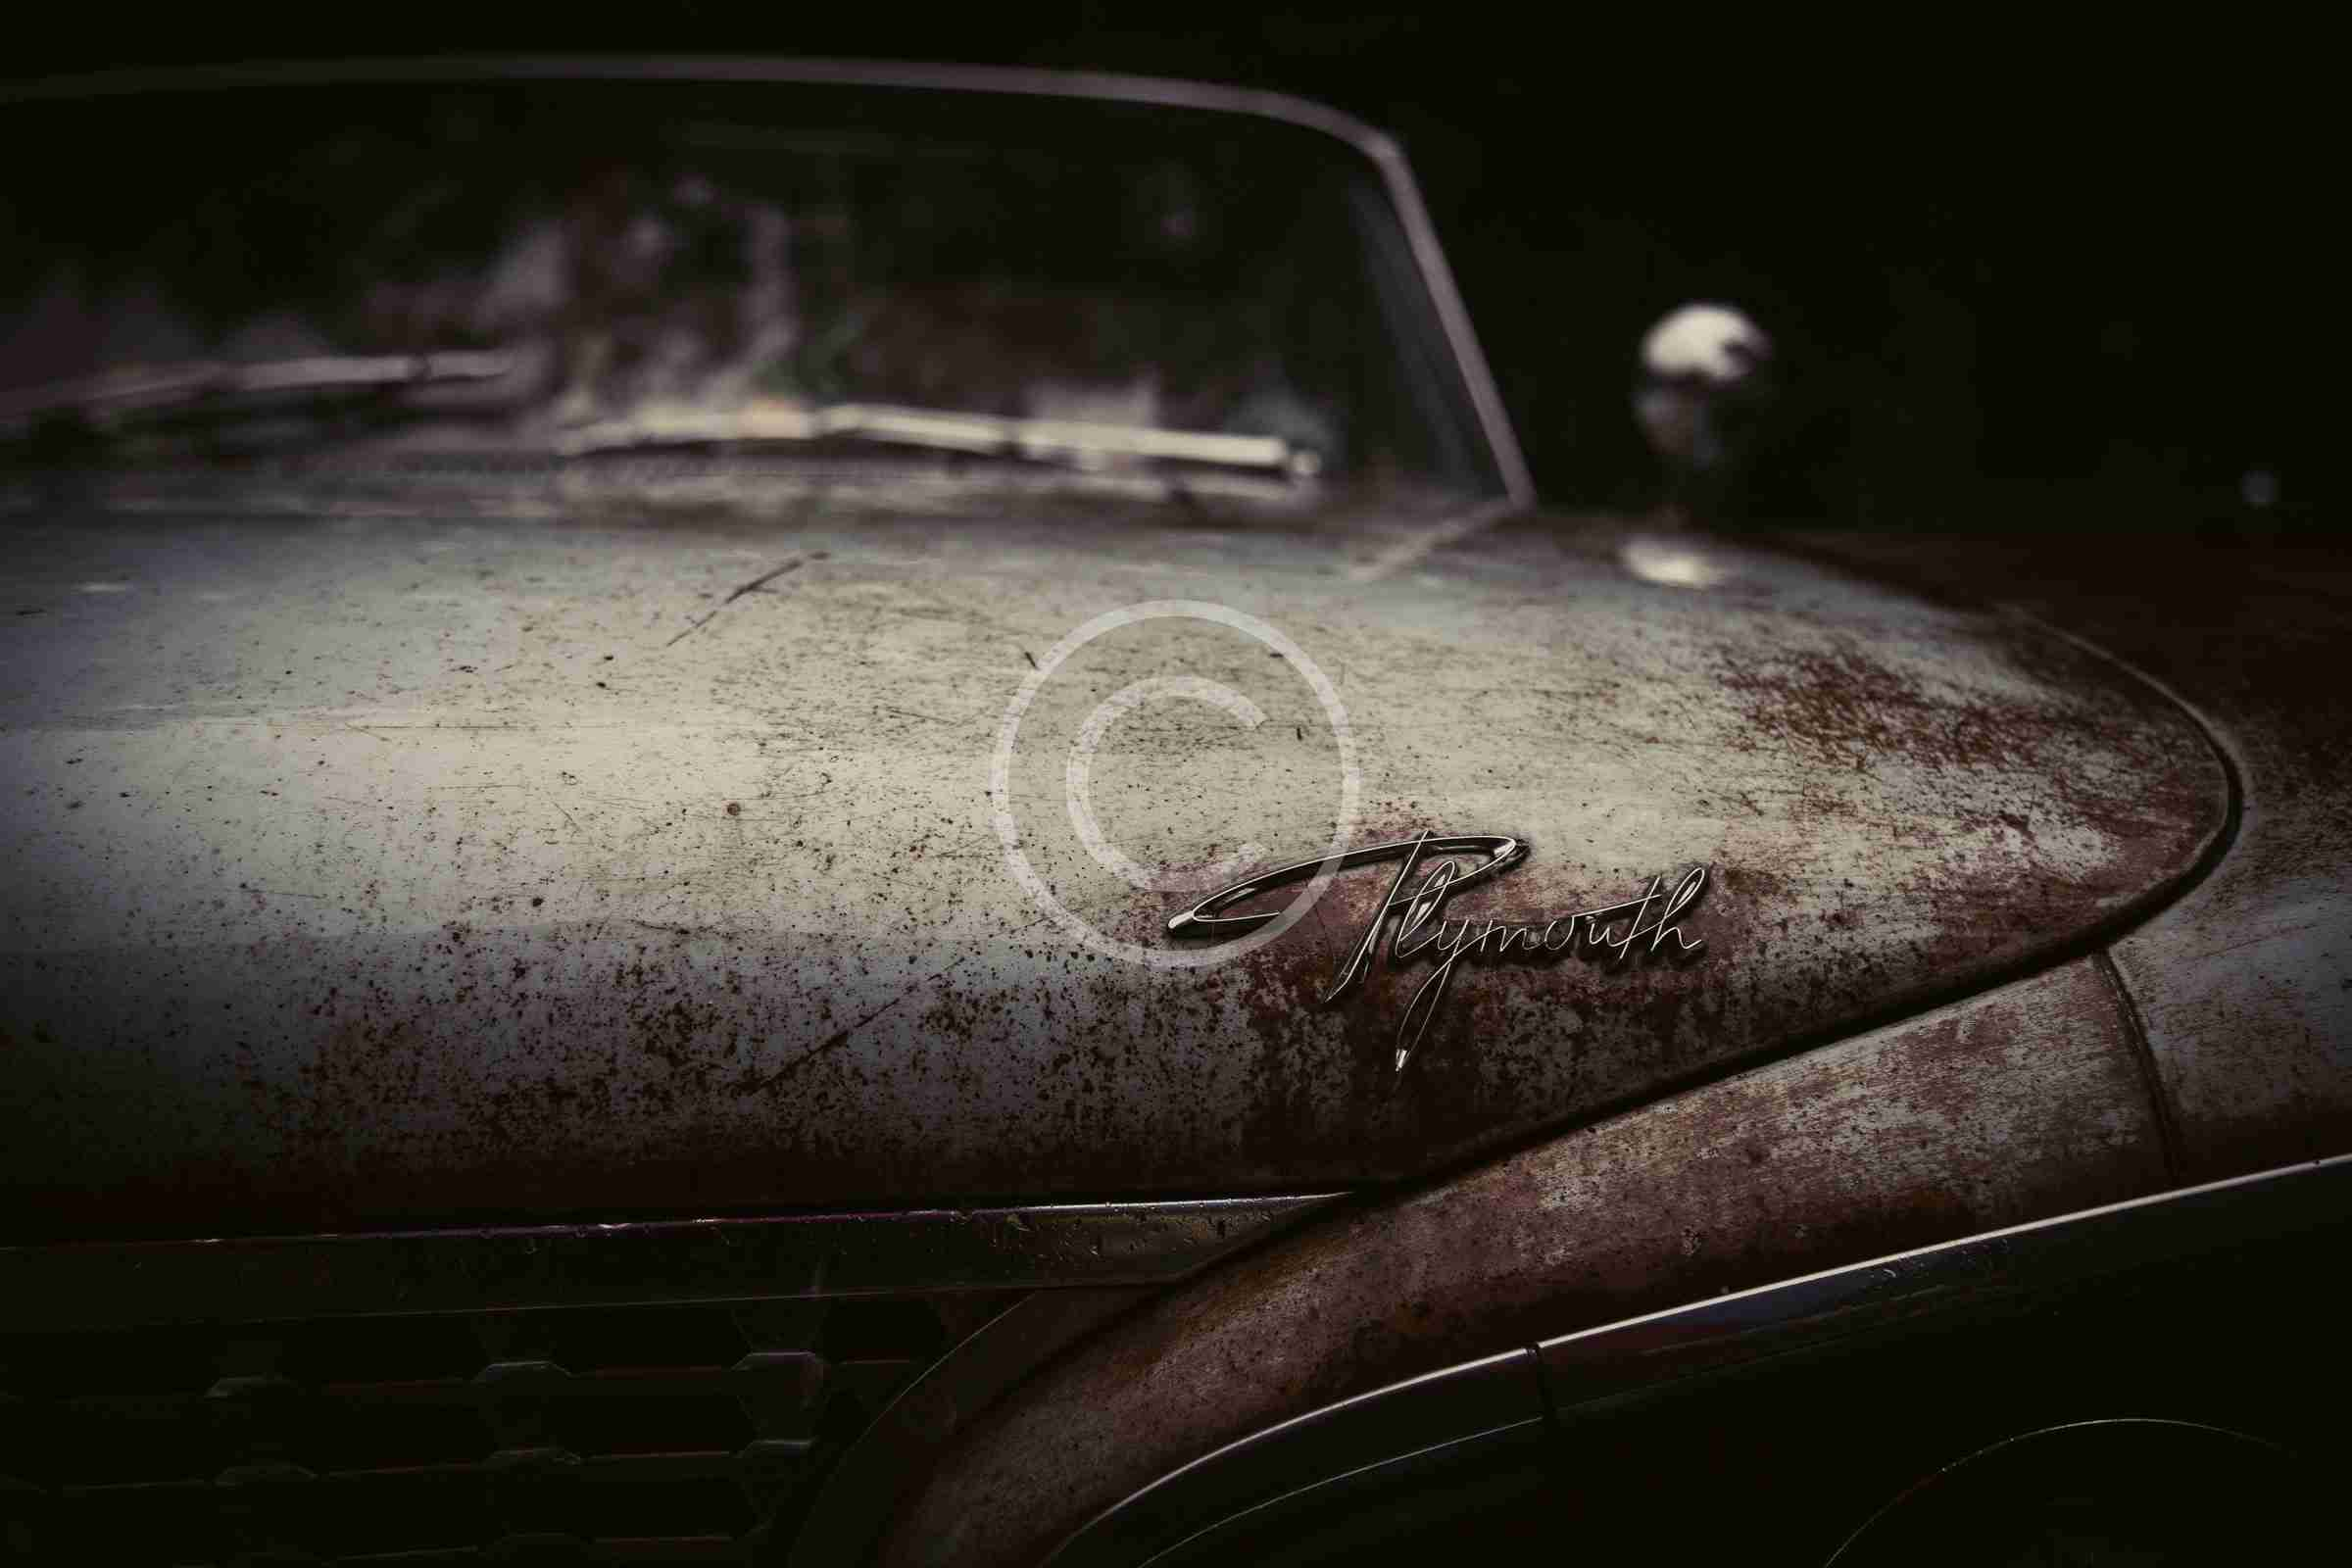 Retro Cars for Adventurous Authors